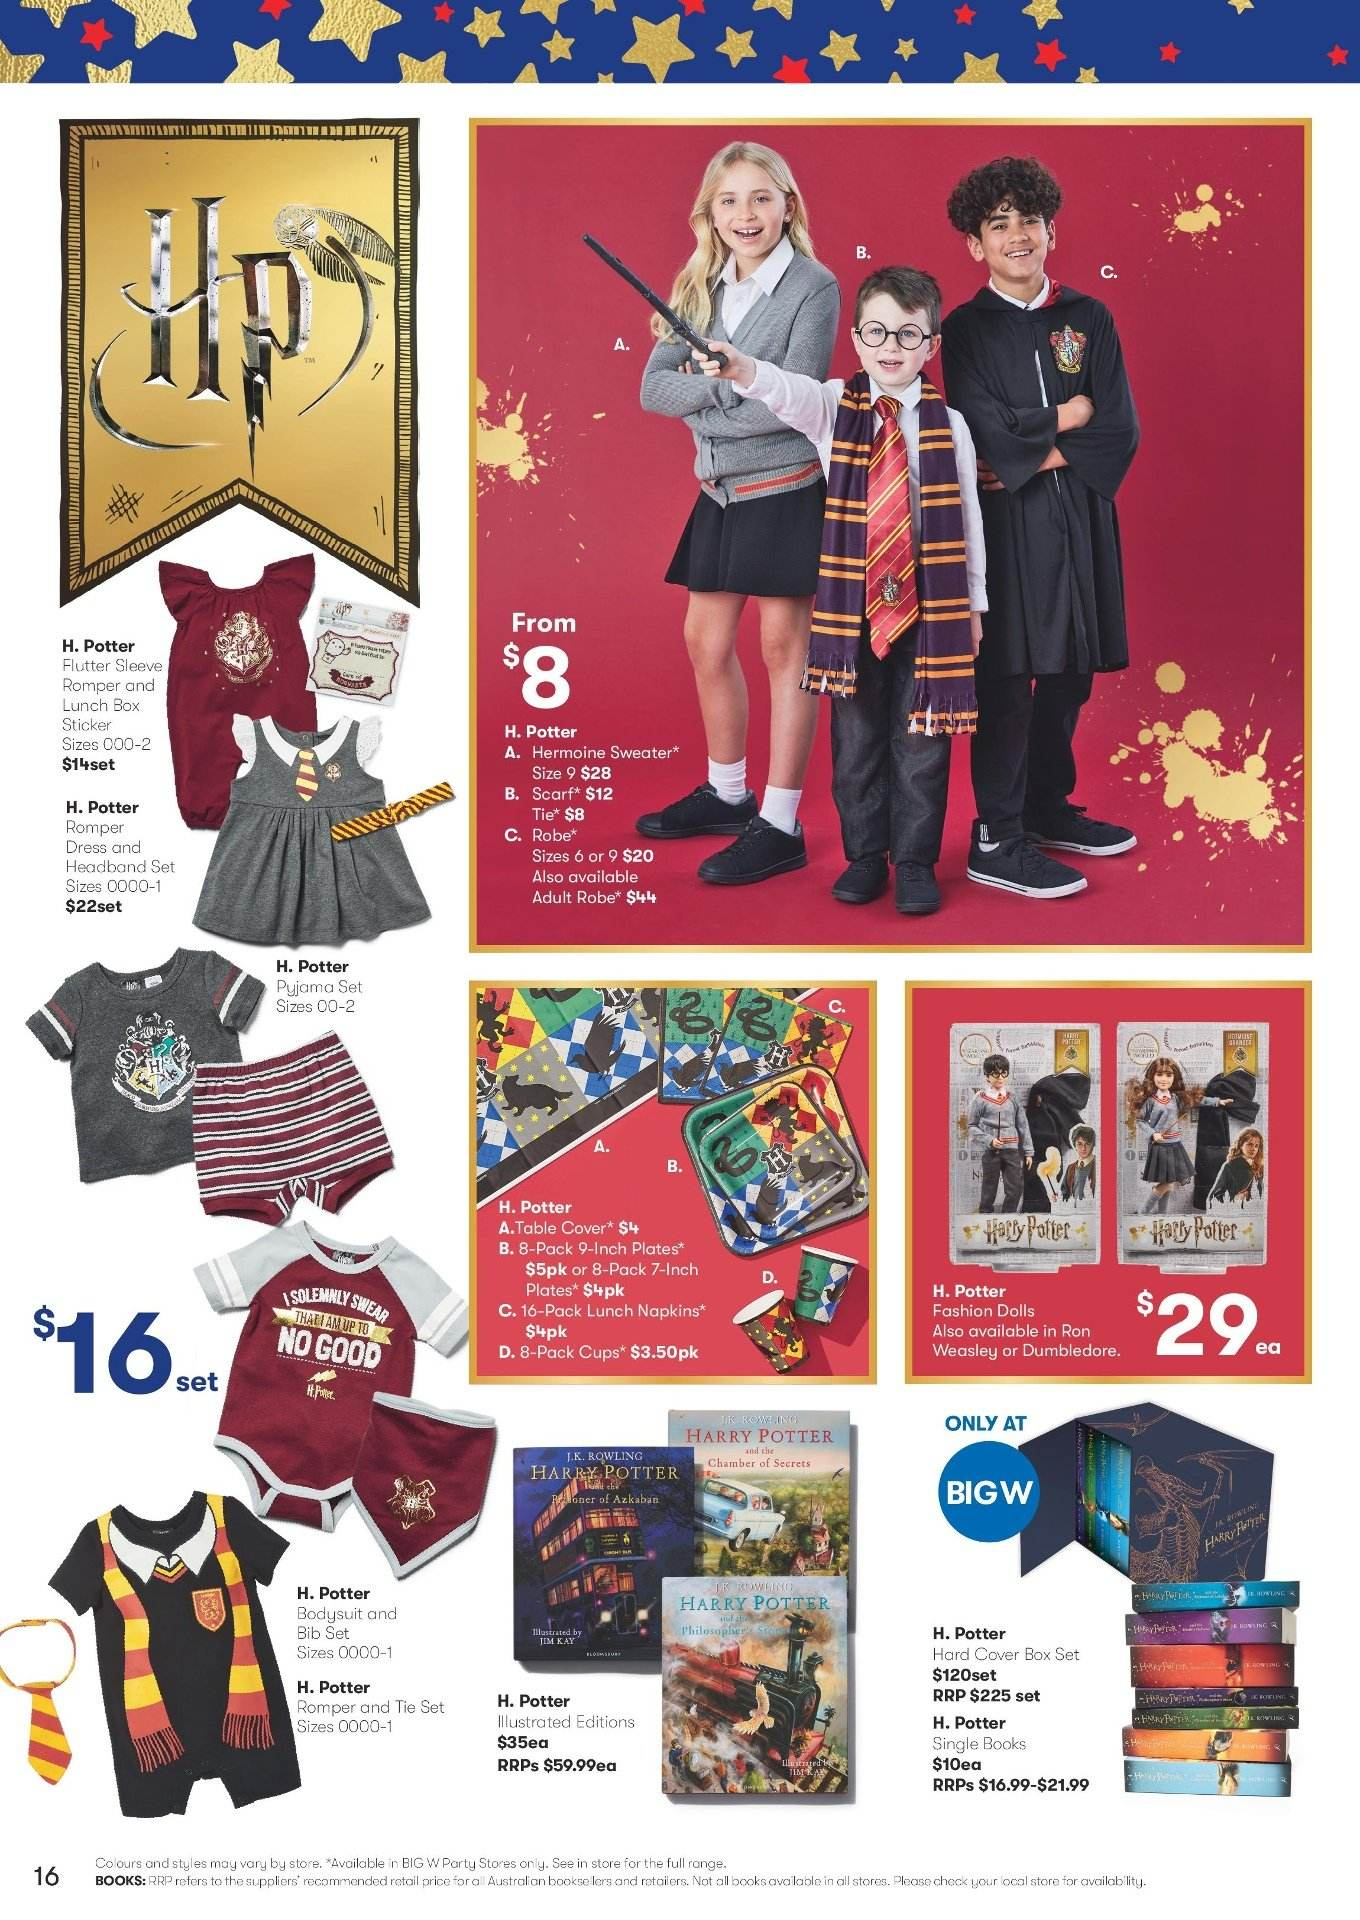 BIG W Catalogue - 29.11.2018 - 12.12.2018 - Sales products - bib, box, cover, doll, dress, robe, scarf, sweater, table, tie, plate. Page 16.